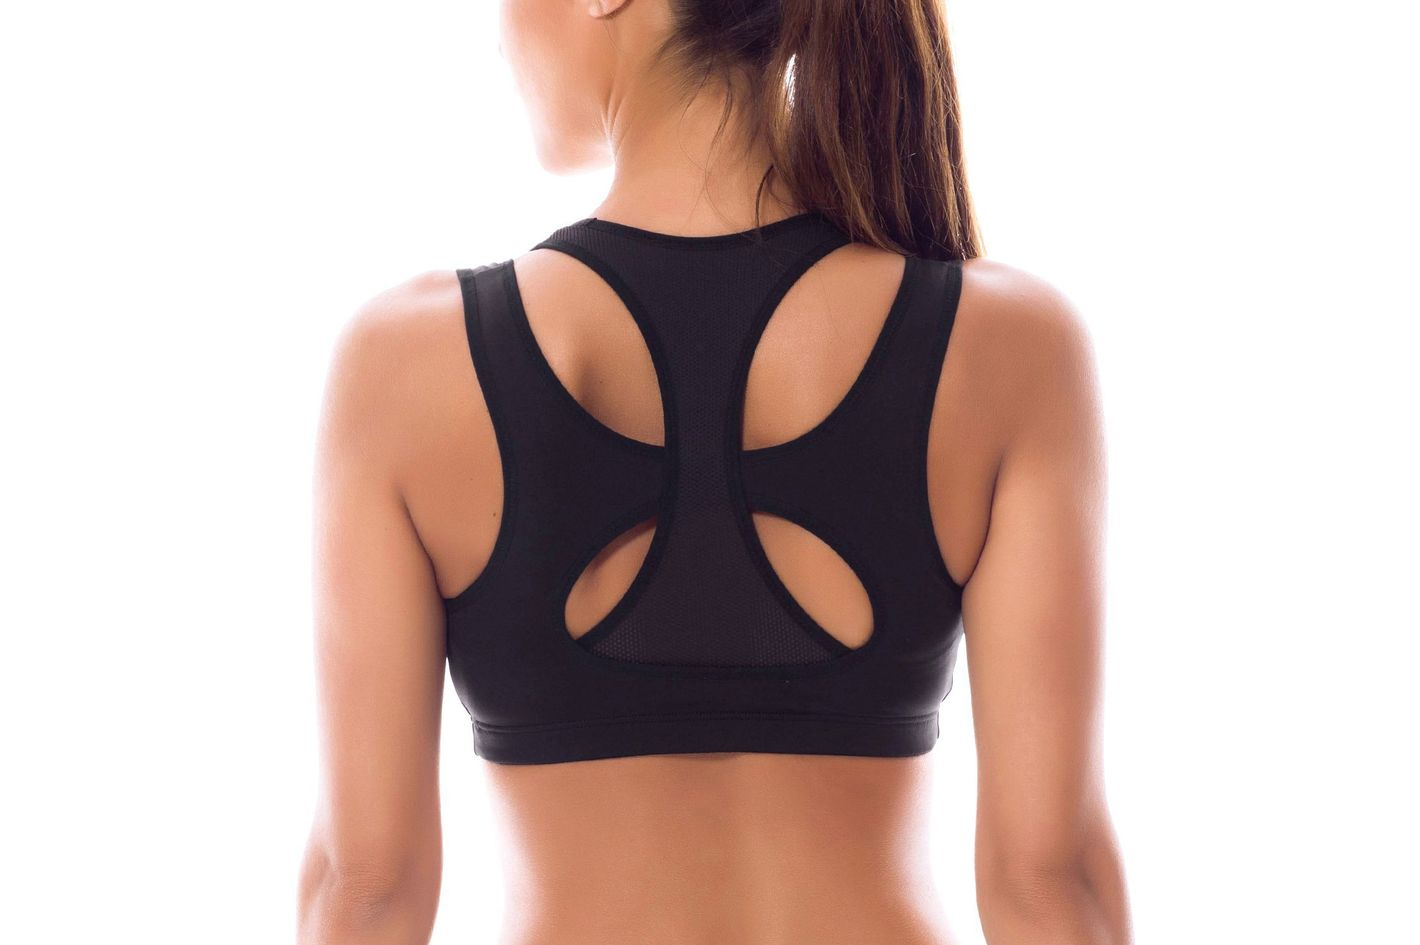 c33ab6ebb1 SYROKAN Women s High Impact Support Wirefree Workout Racerback Sports Bra  Top